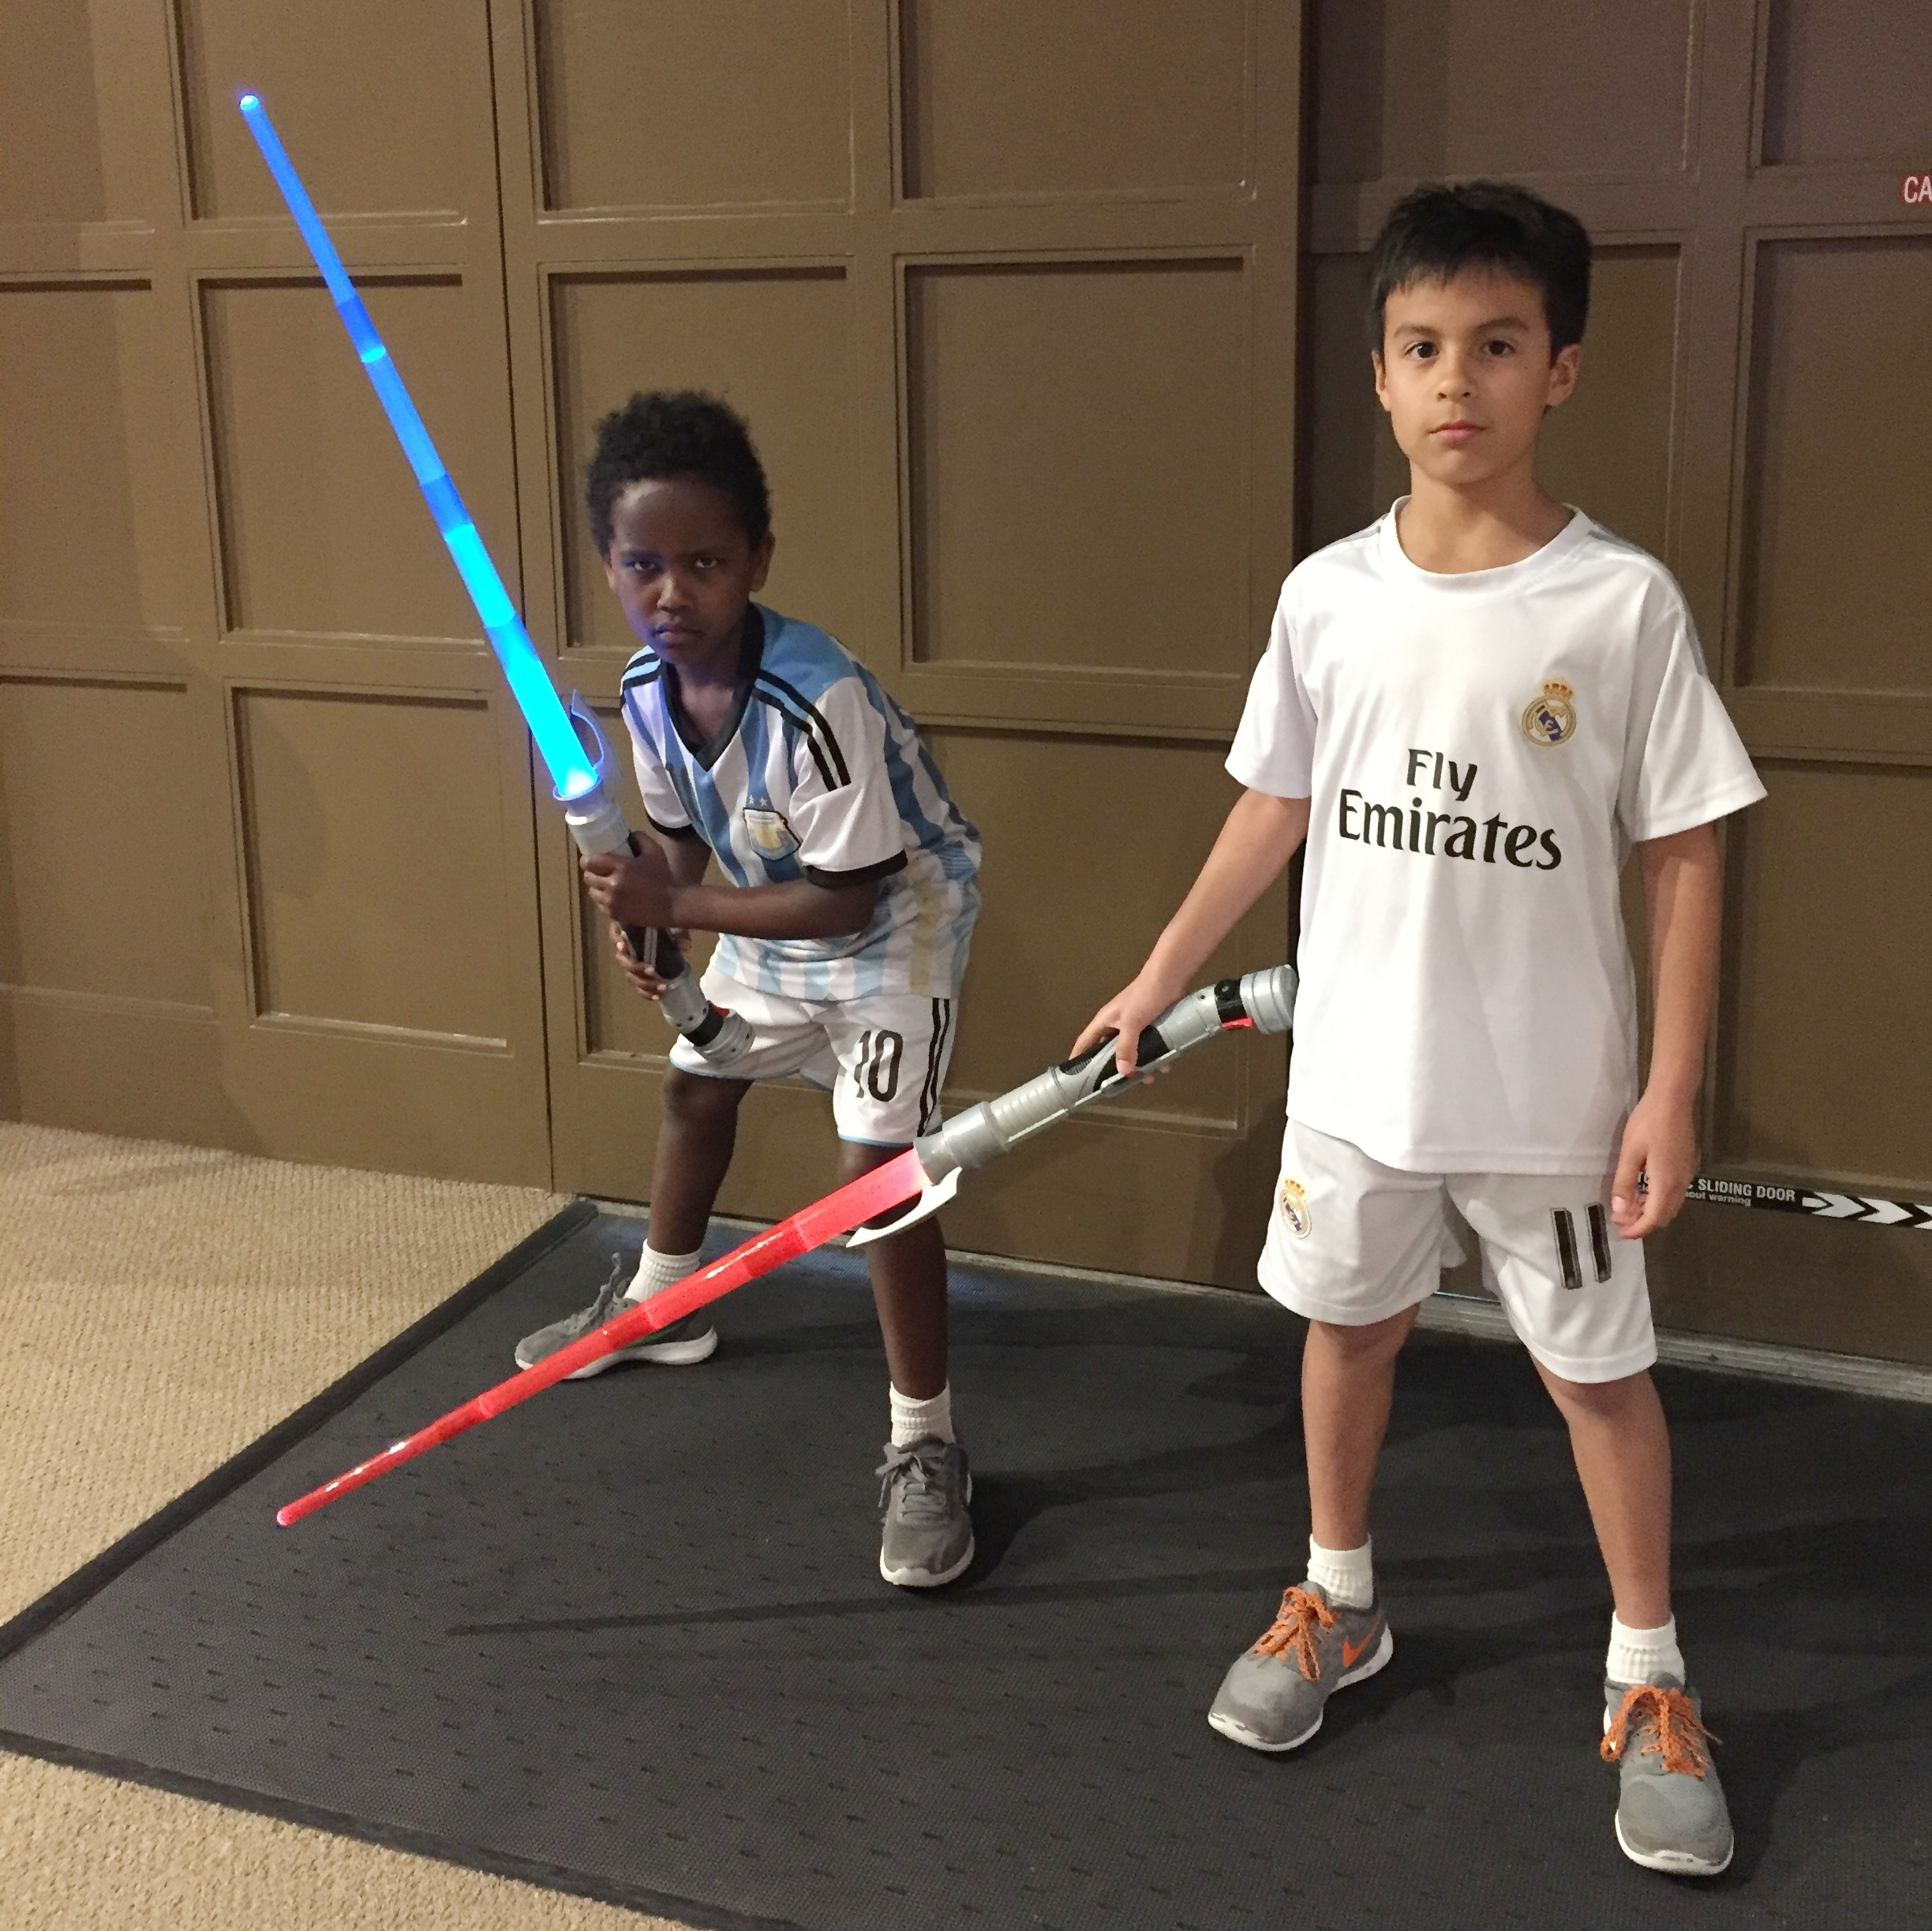 In a typical moment in David's household, his two boys prepare for battle.